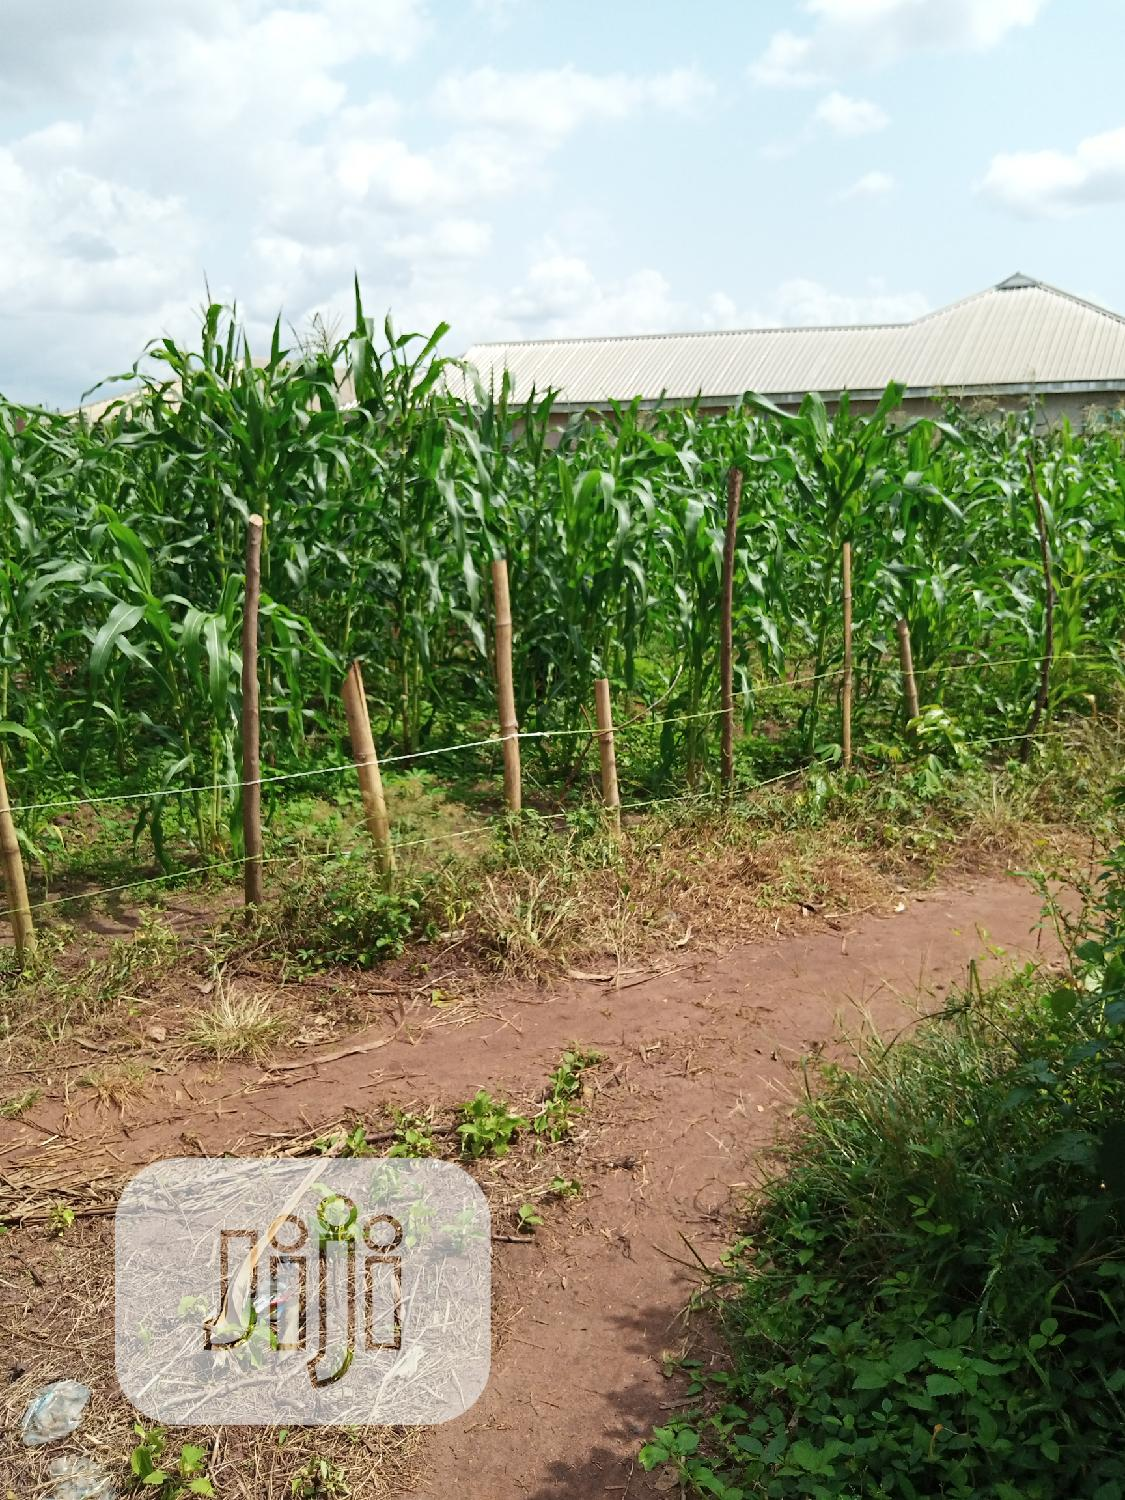 50/100 Land for Sale at Ogbomro, Warri